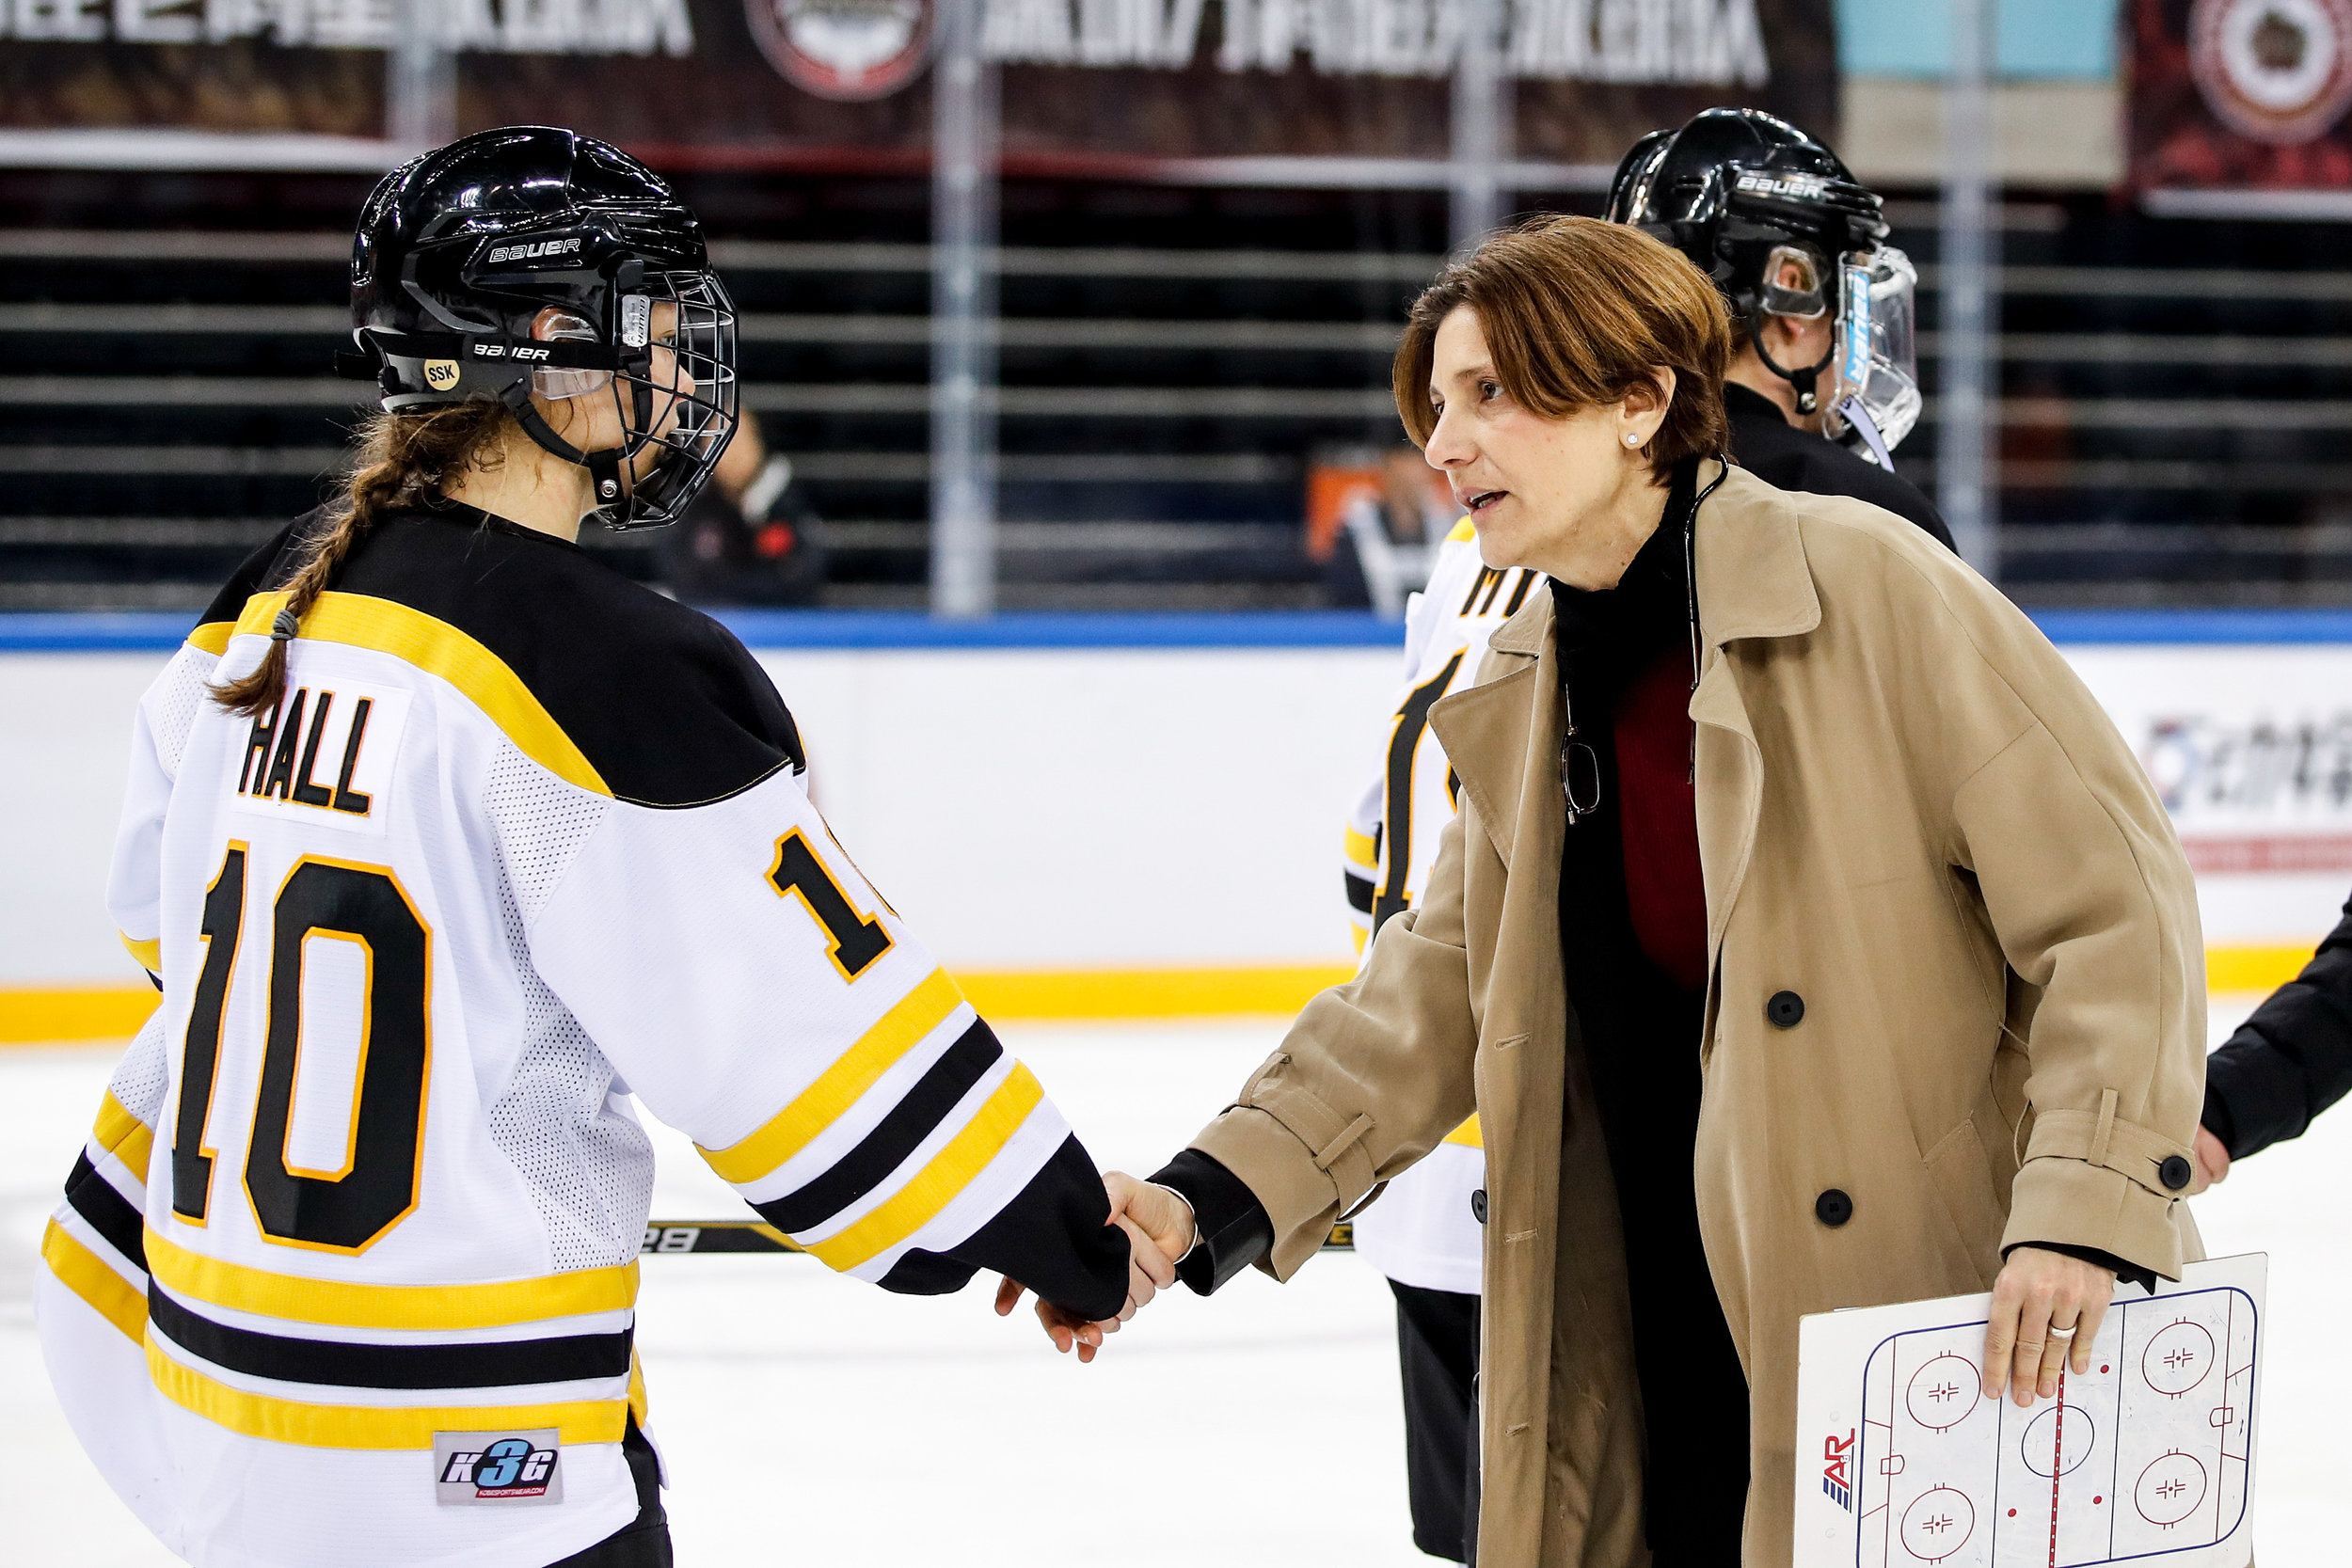 Digit shaking hands with Blades player in line.jpg